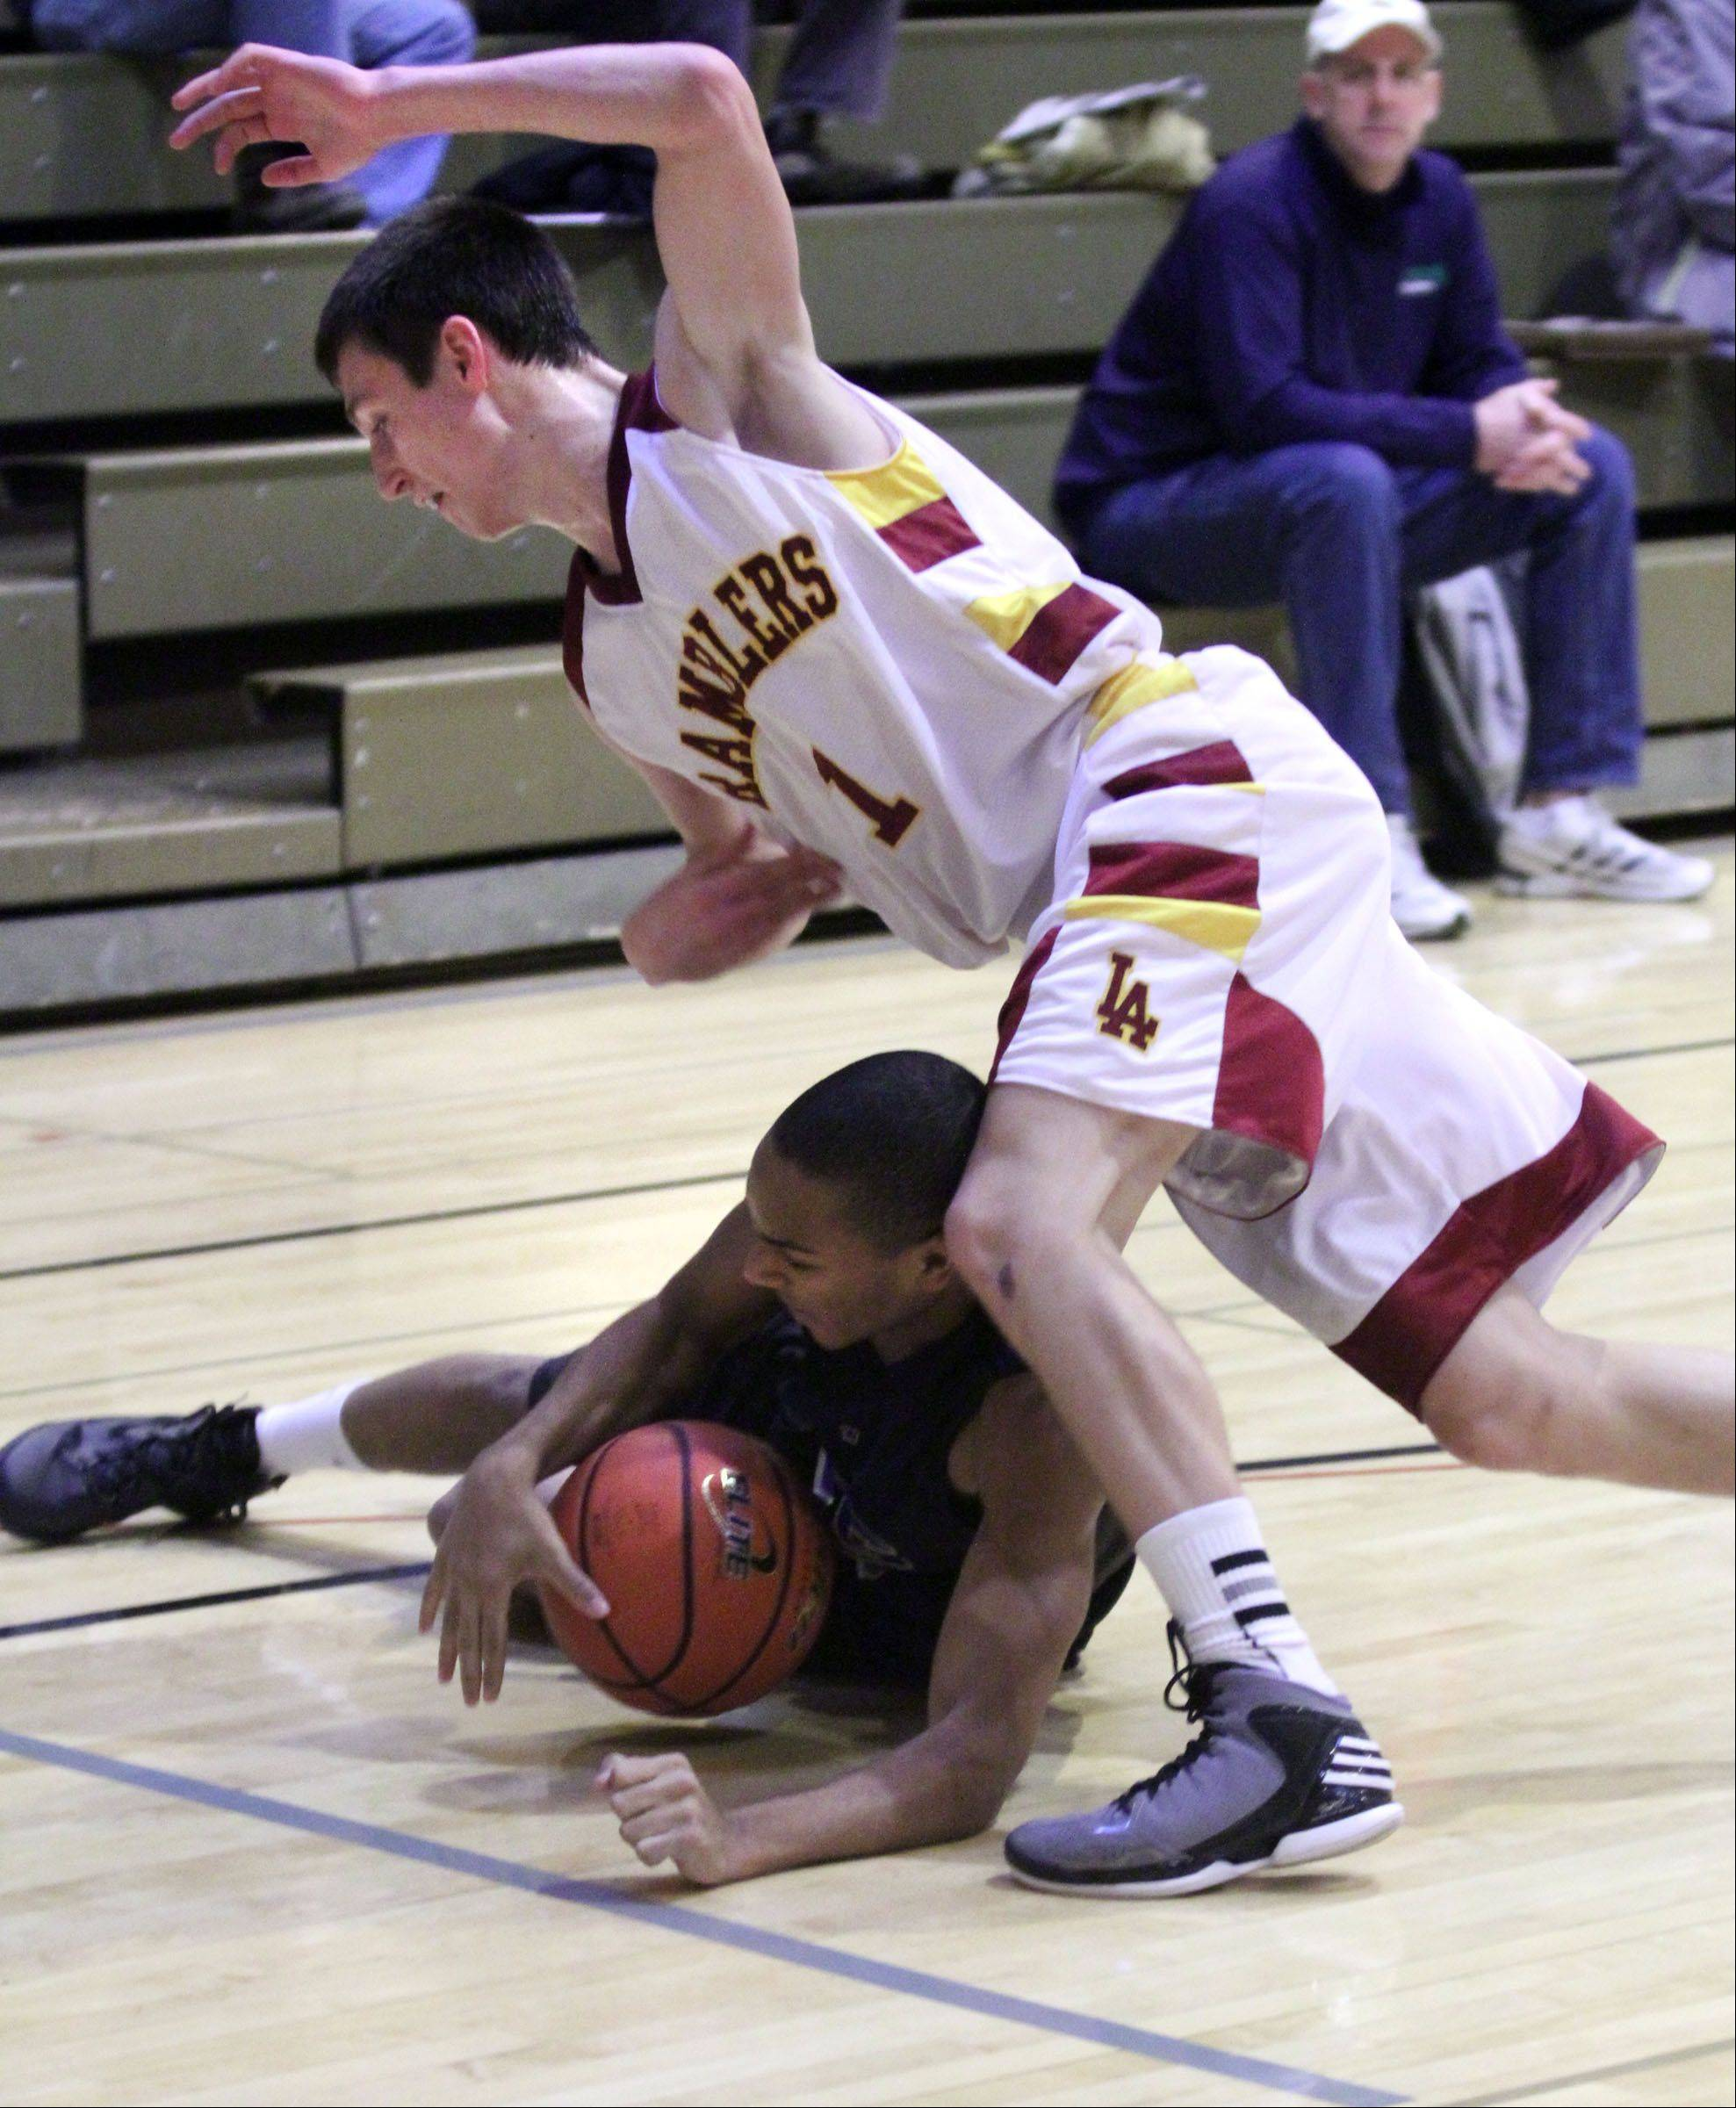 Loyola defender Kevin Kucera falls over Wheeling's Nate Laude after a battle for a loose ball in Wheeling on Wednesday.